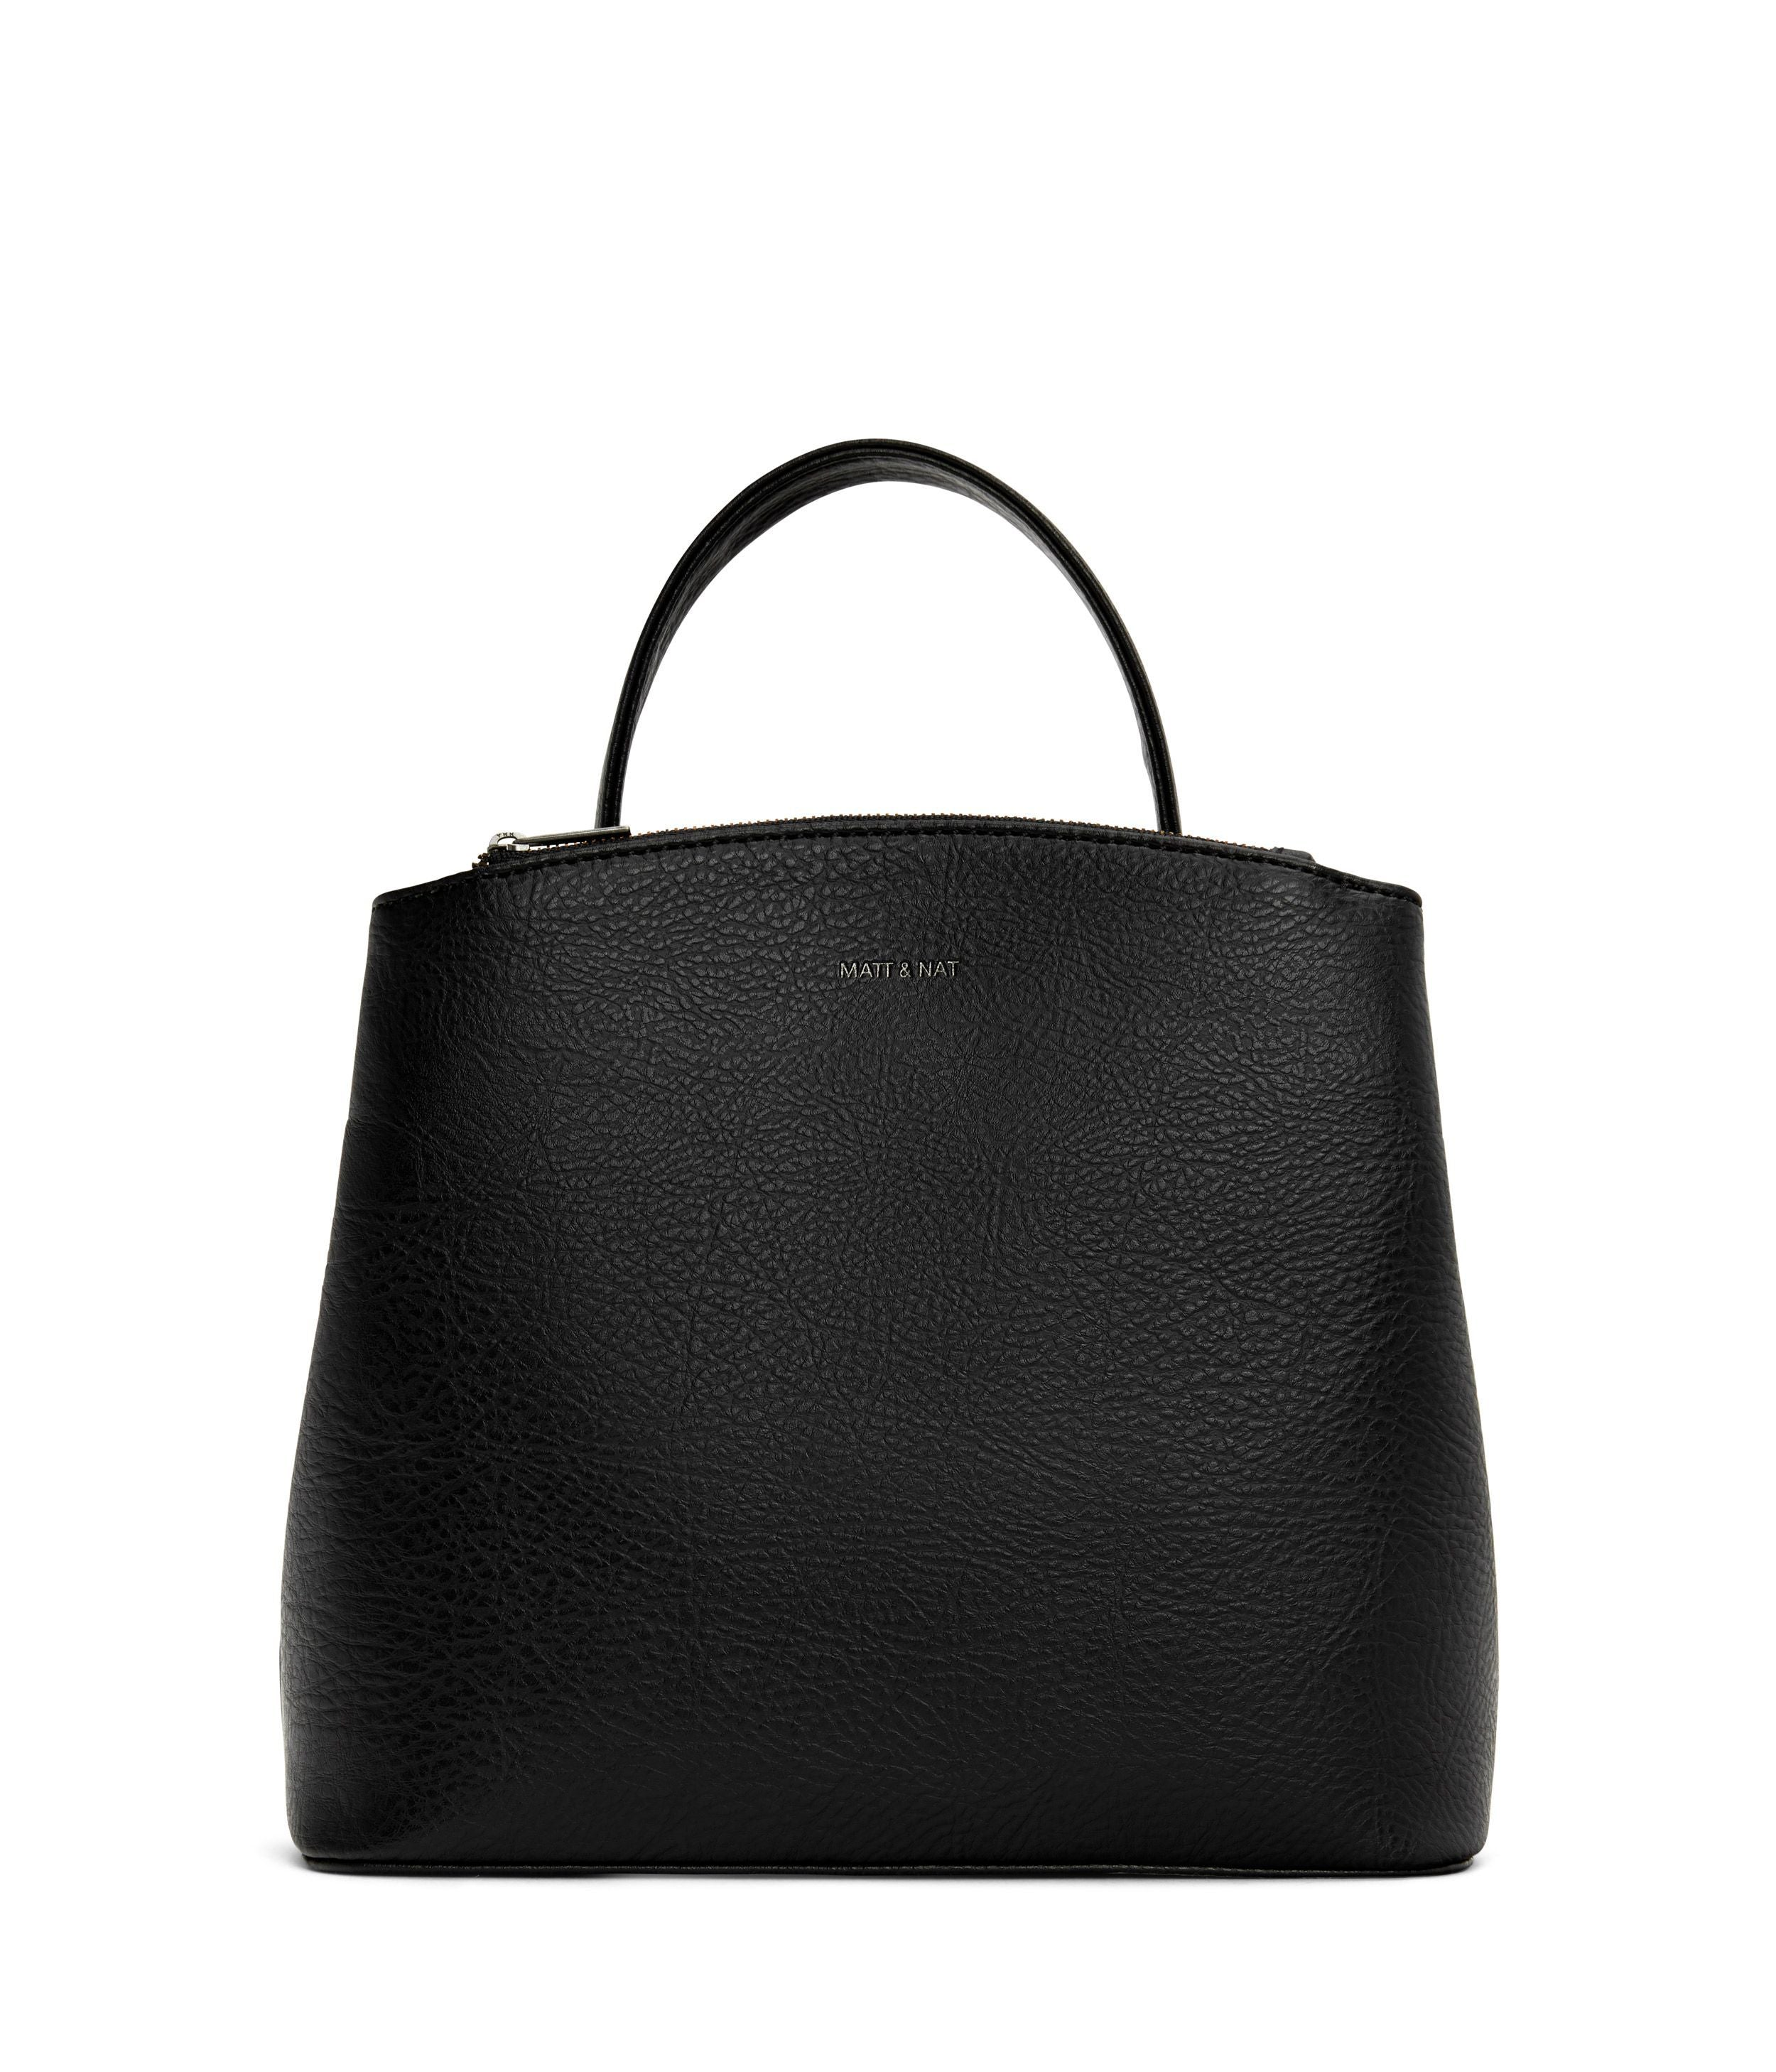 Matt & Nat Handbag - Rees Black